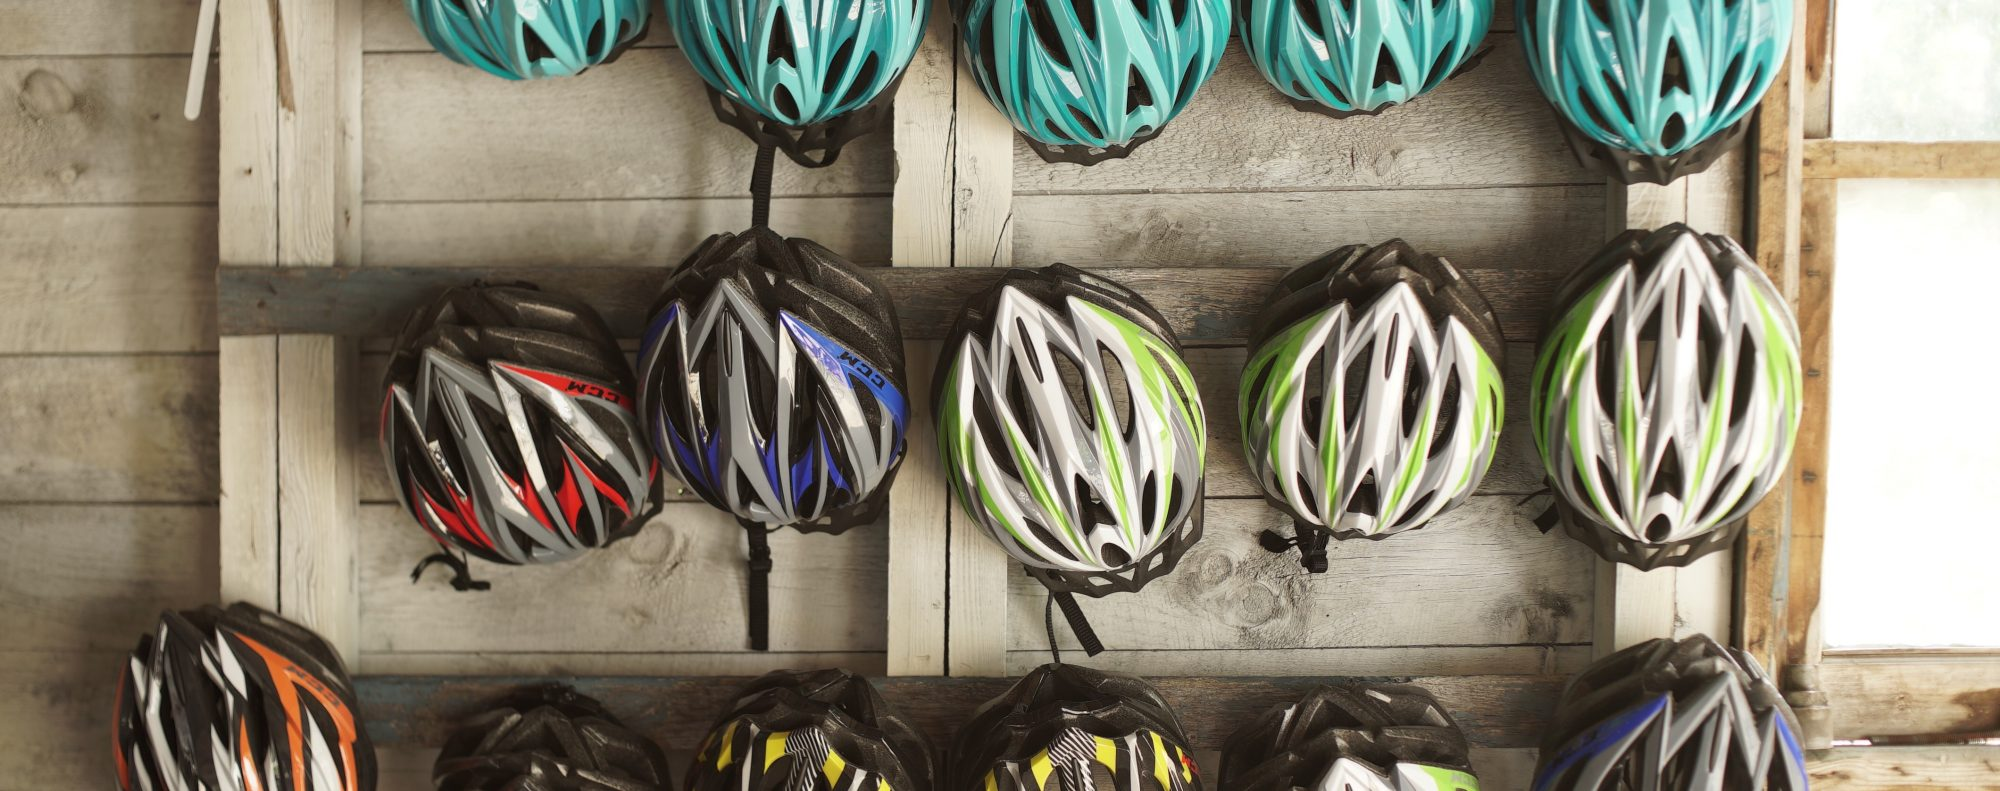 bicycle helmets cycling prince edward county